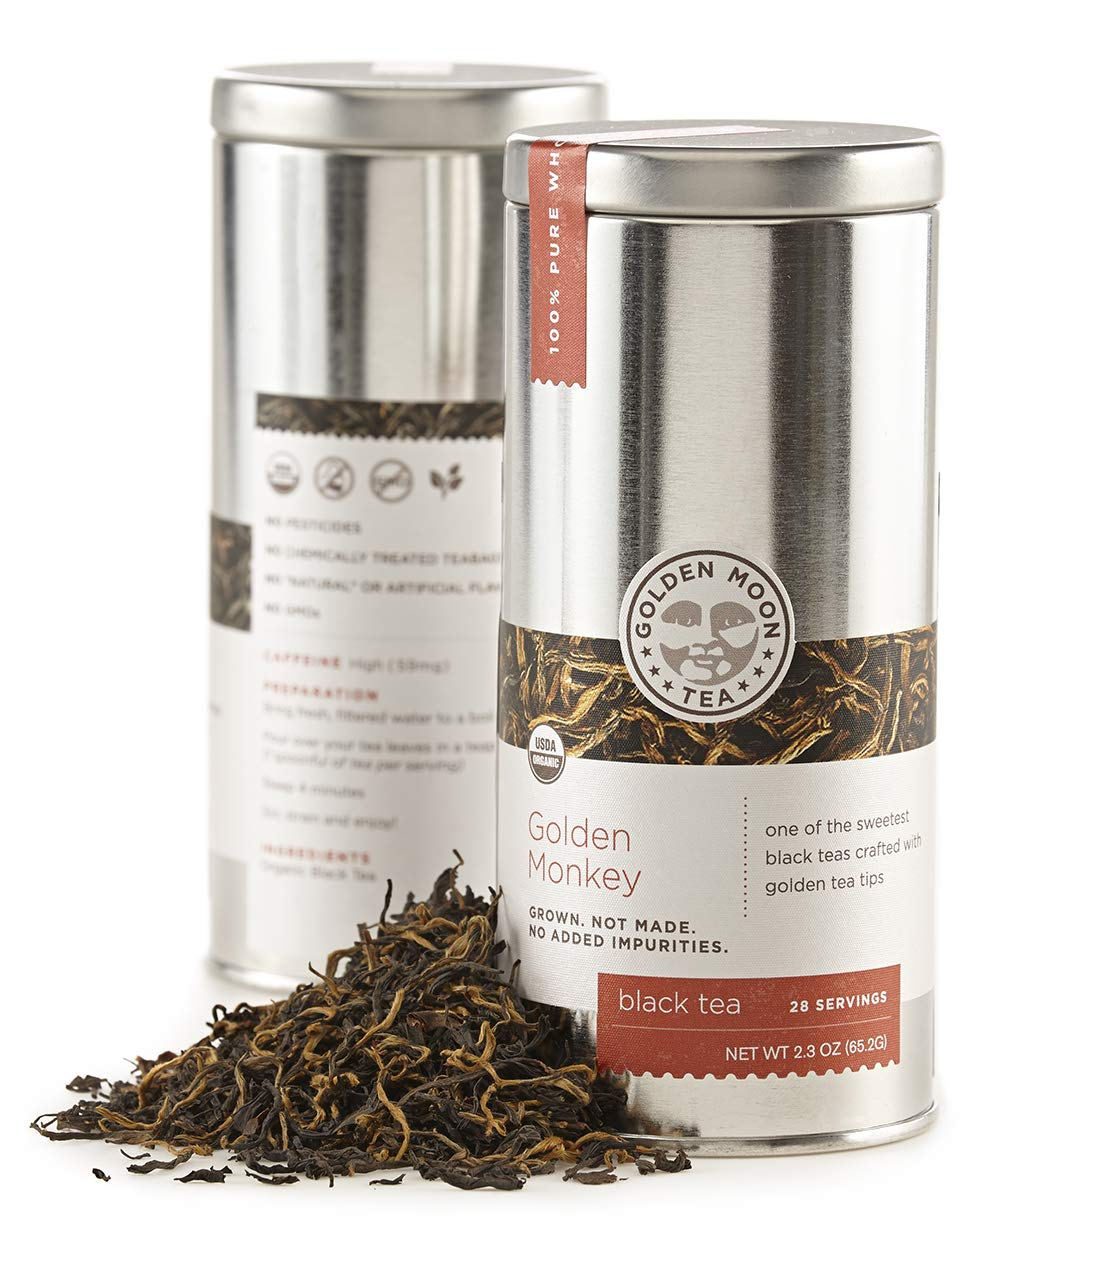 Golden Moon Organic Black Tea Non-GM Monkey Leaf Complete Free Shipping Loose - Selling